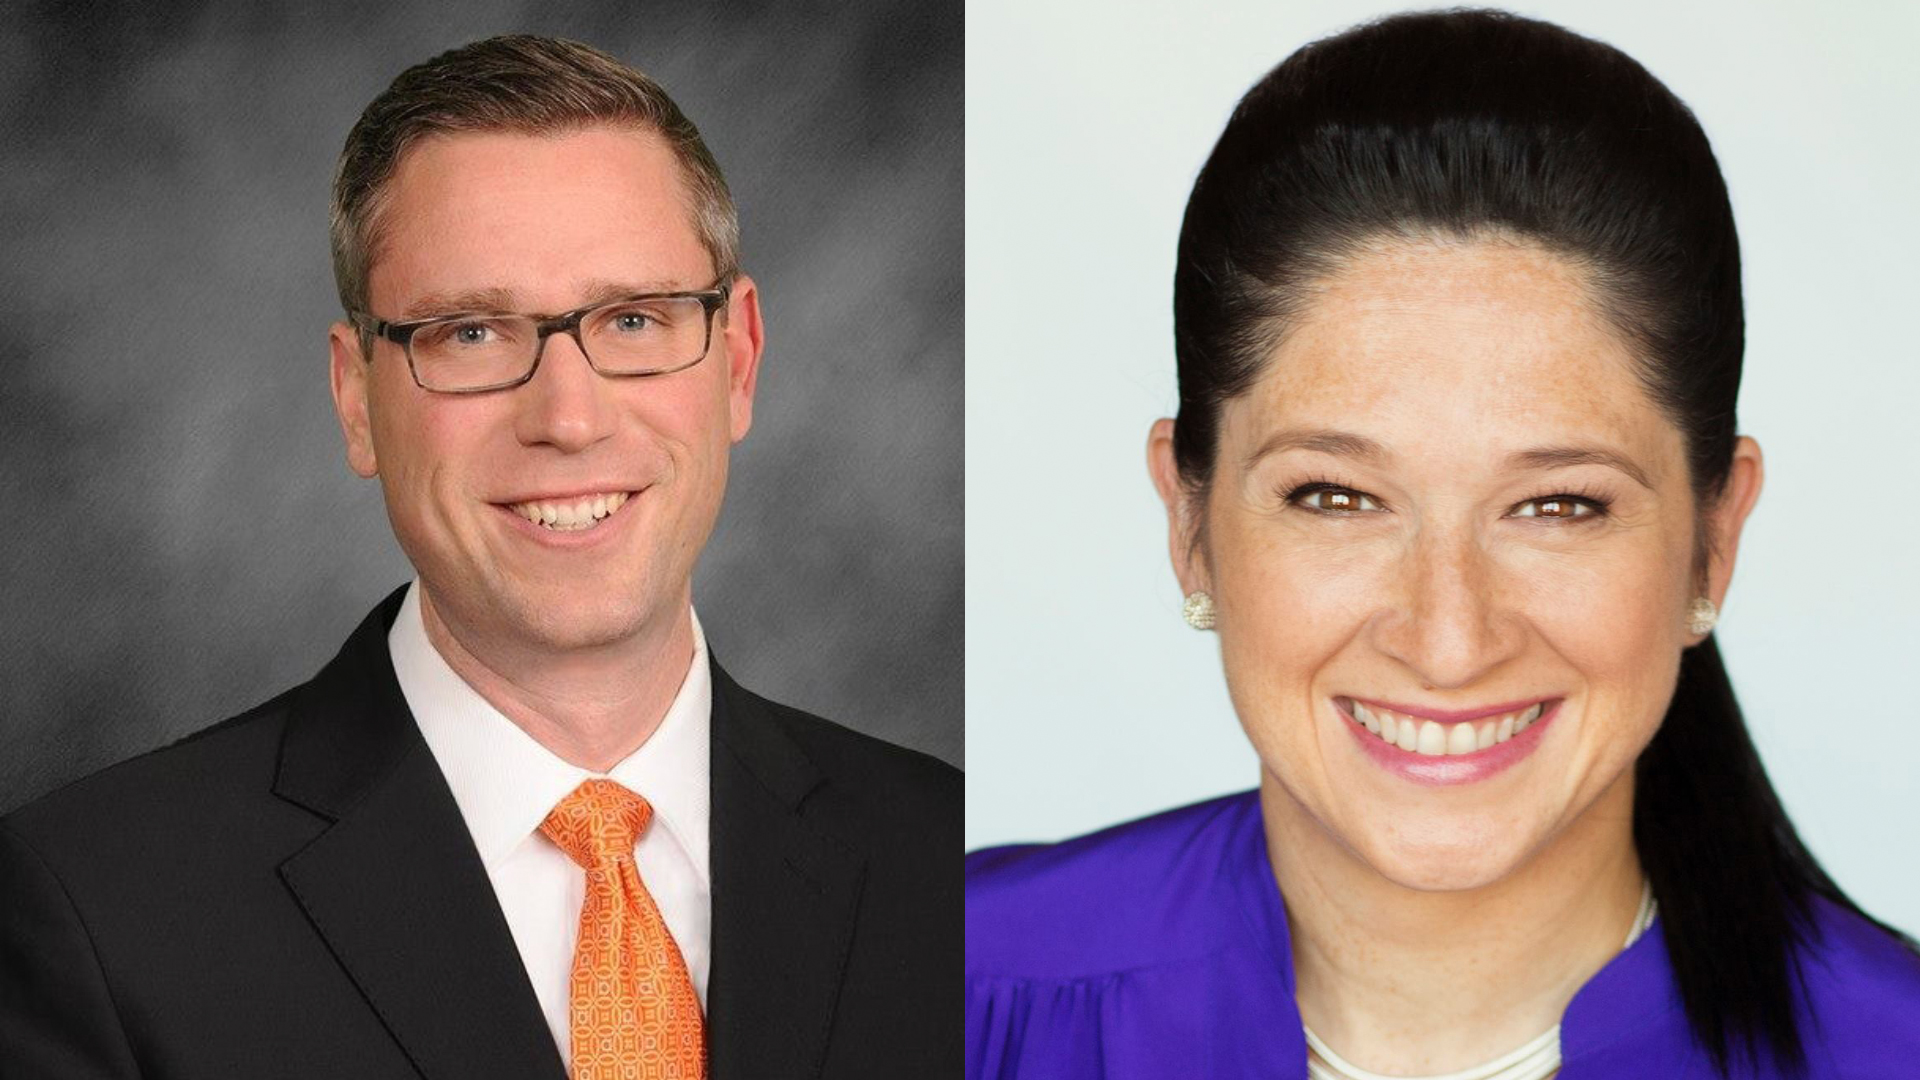 Frerichs, Mendoza Team Up For New Bill Paying Initiative